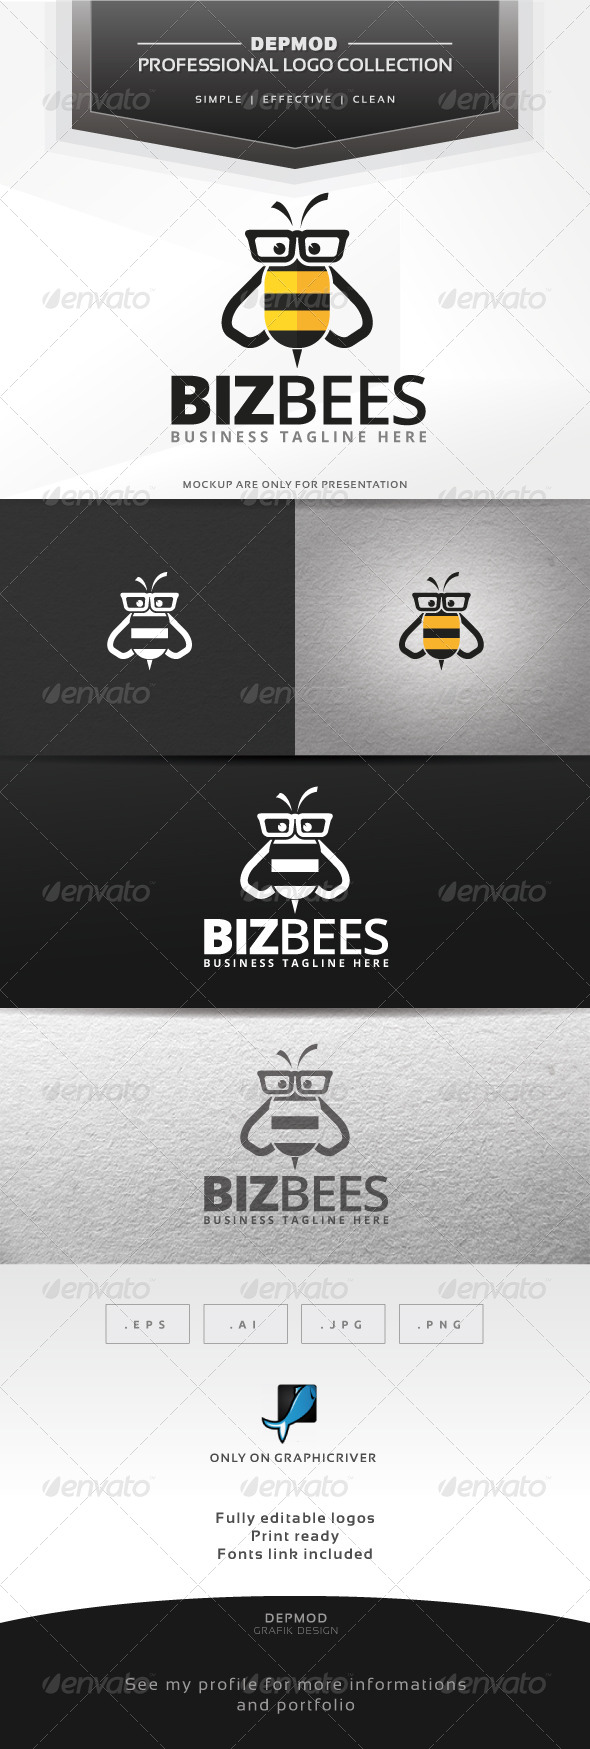 Biz Bees Logo - Animals Logo Templates